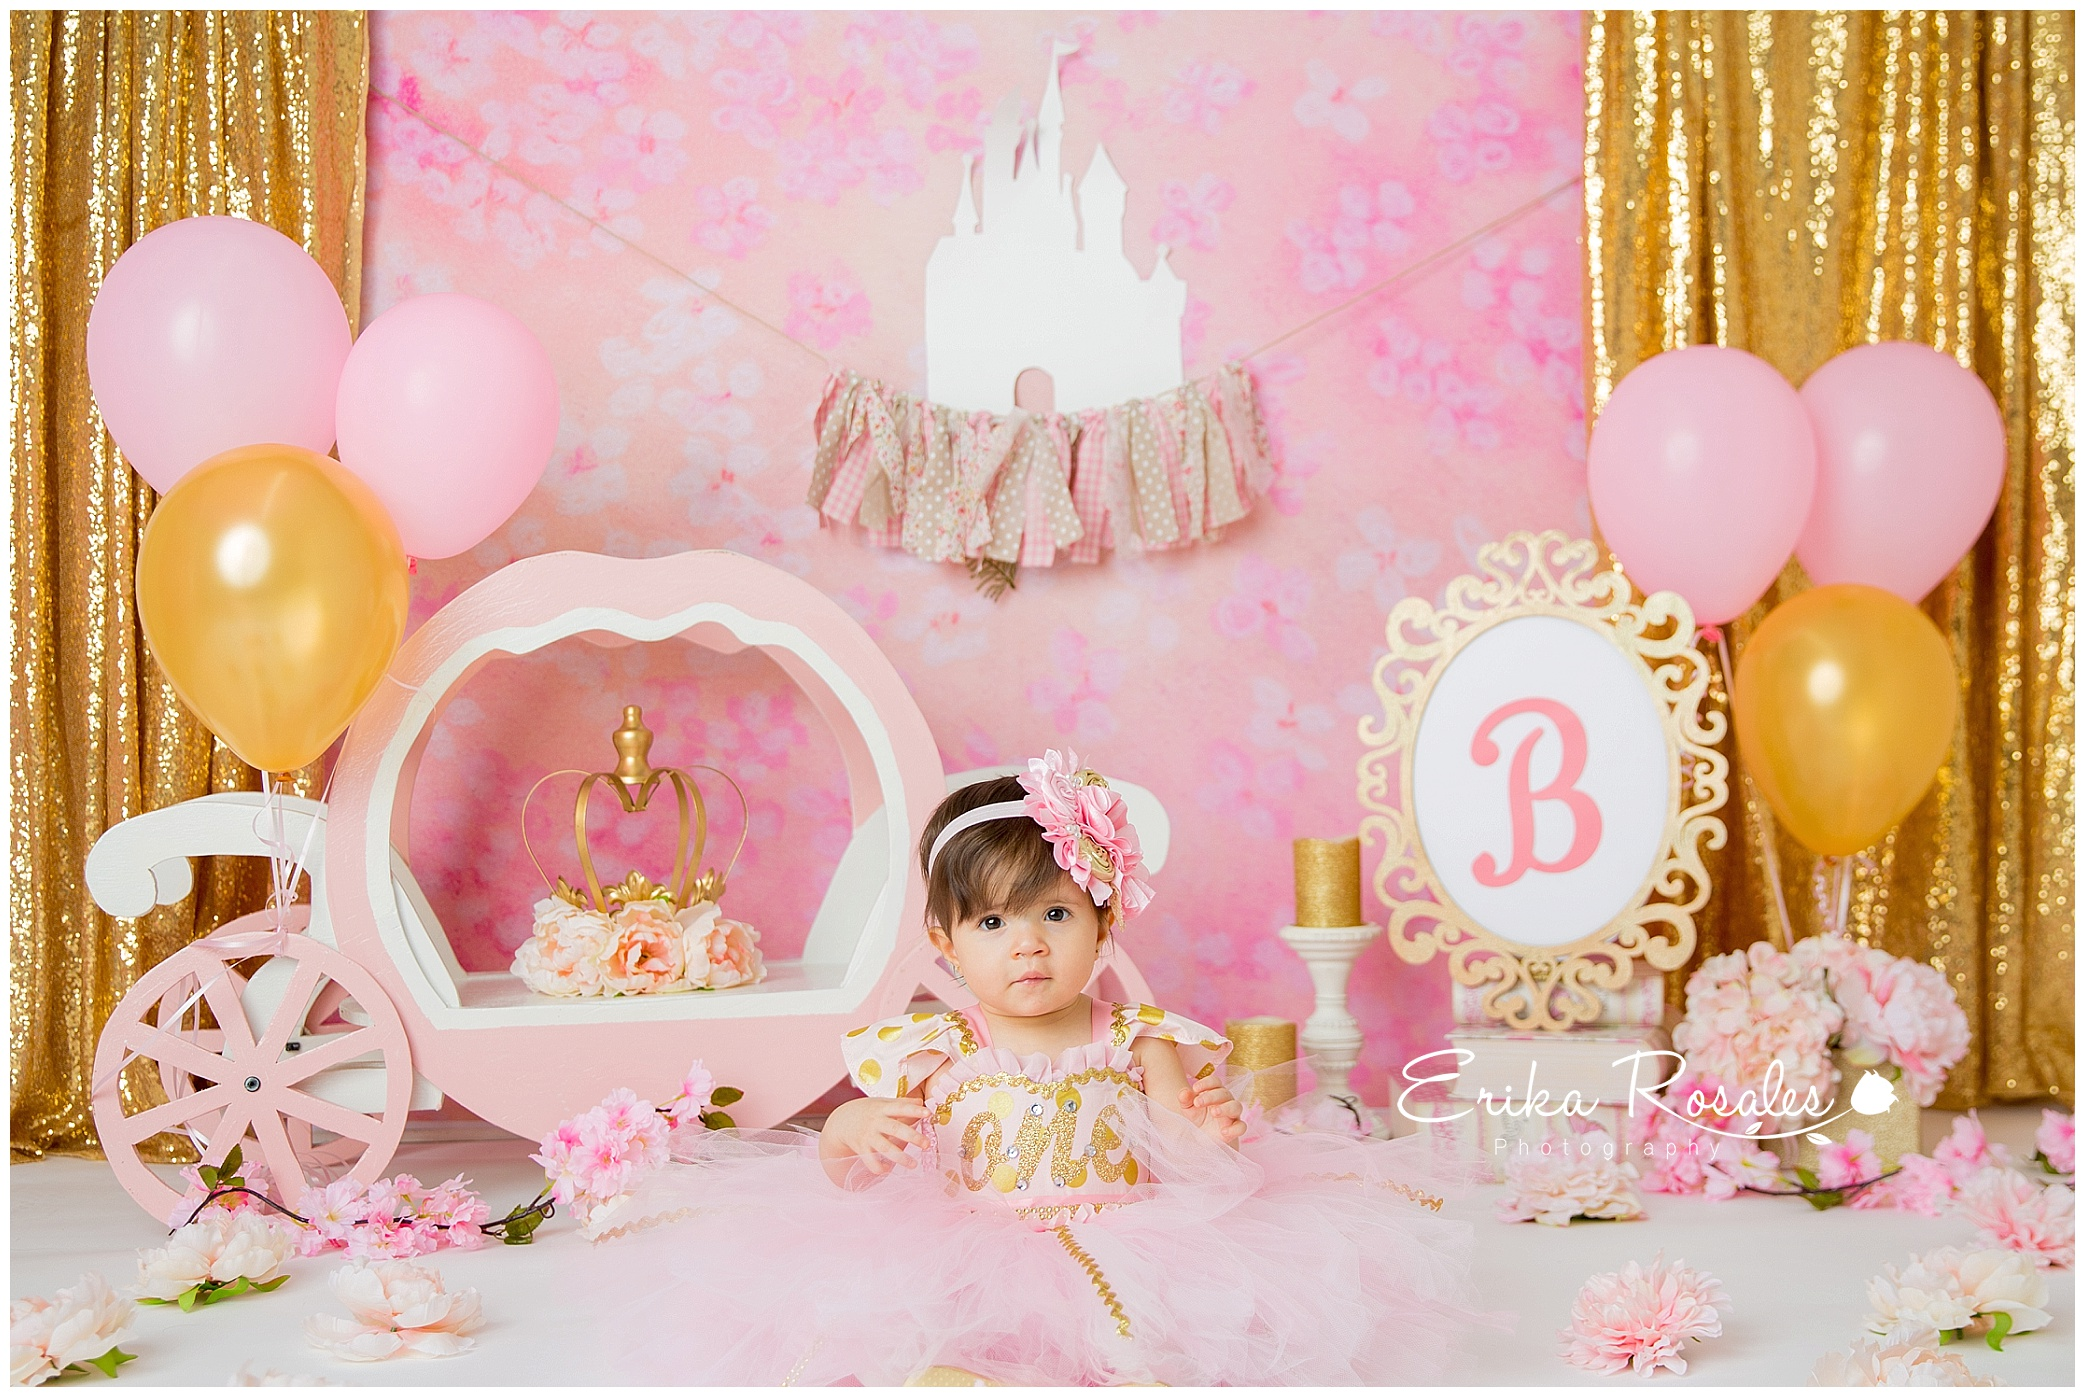 Baby Princess First Birthday Archives Erika Rosales New York Photo